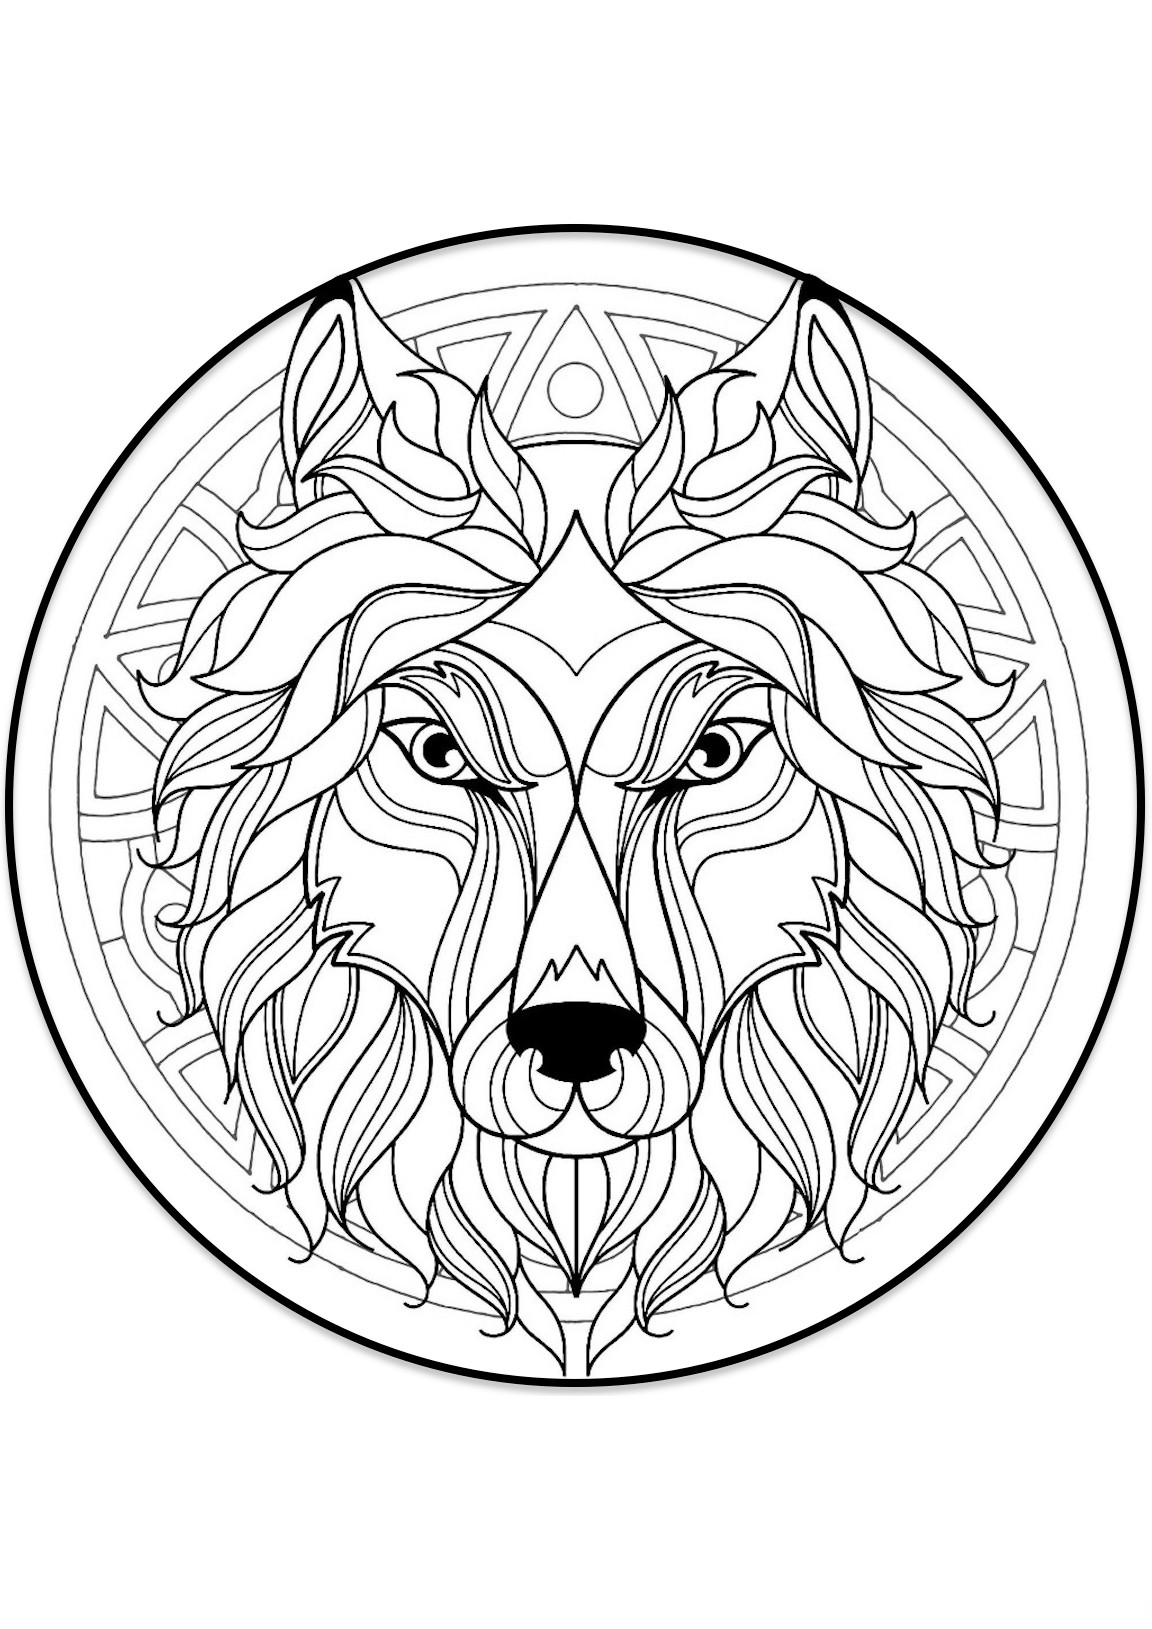 mandala coloring pages free free printable mandala coloring pages for adults free mandala coloring pages